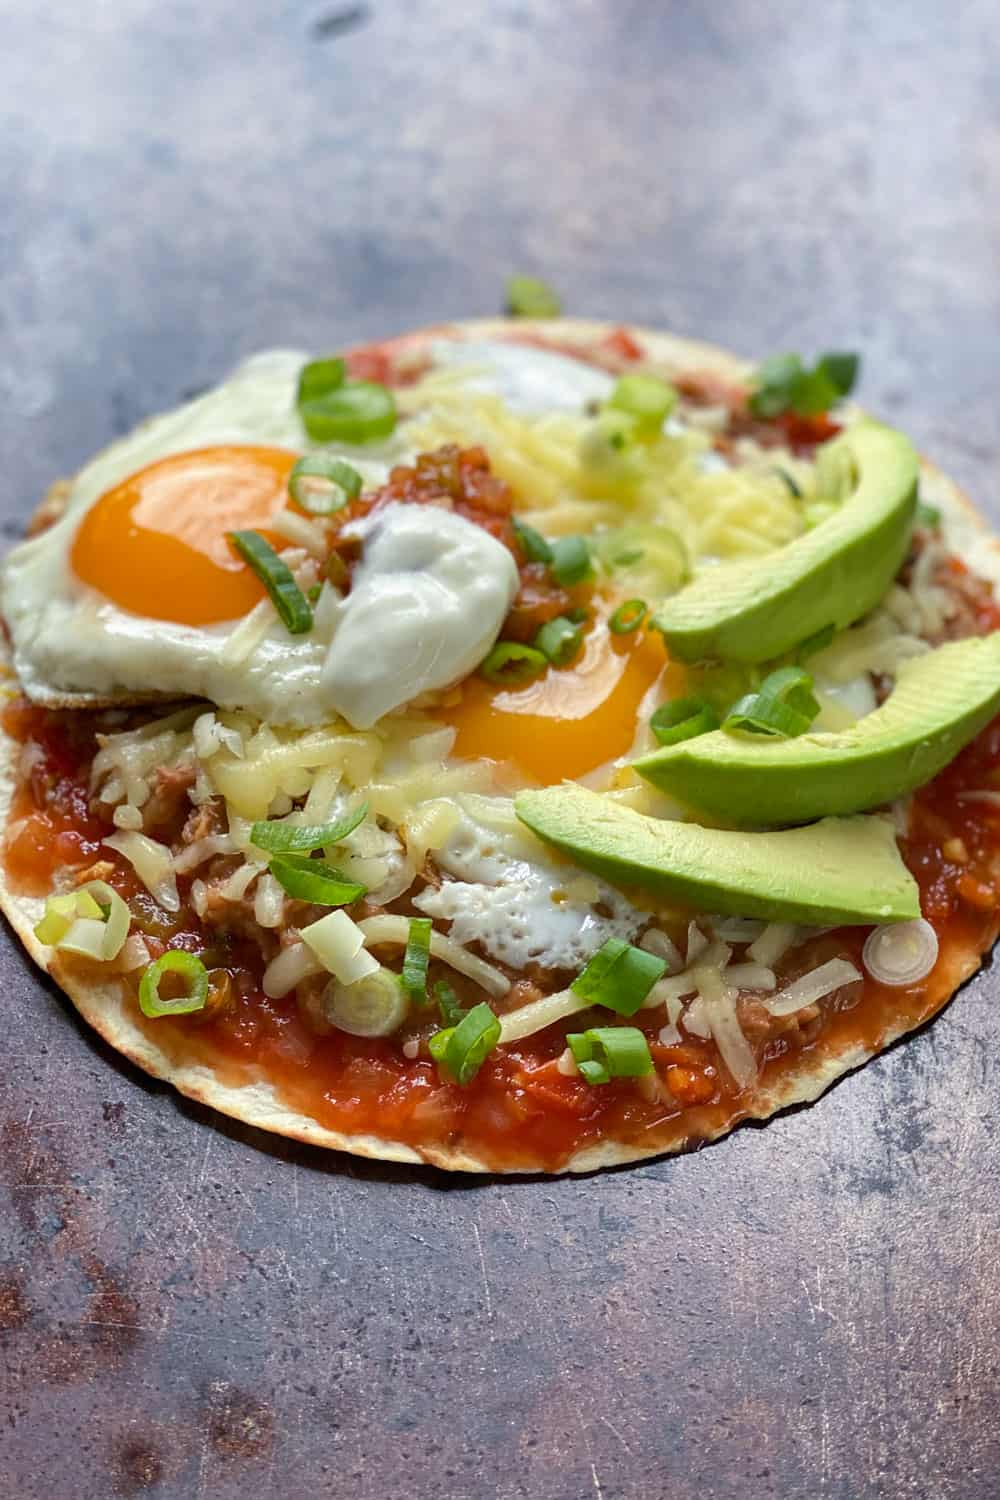 huevos rancheros: a flour tortilla on a sheet pan topped with salsa, refried beans, two sunny side up eggs, grated cheese, sliced avocados and chopped scallions.